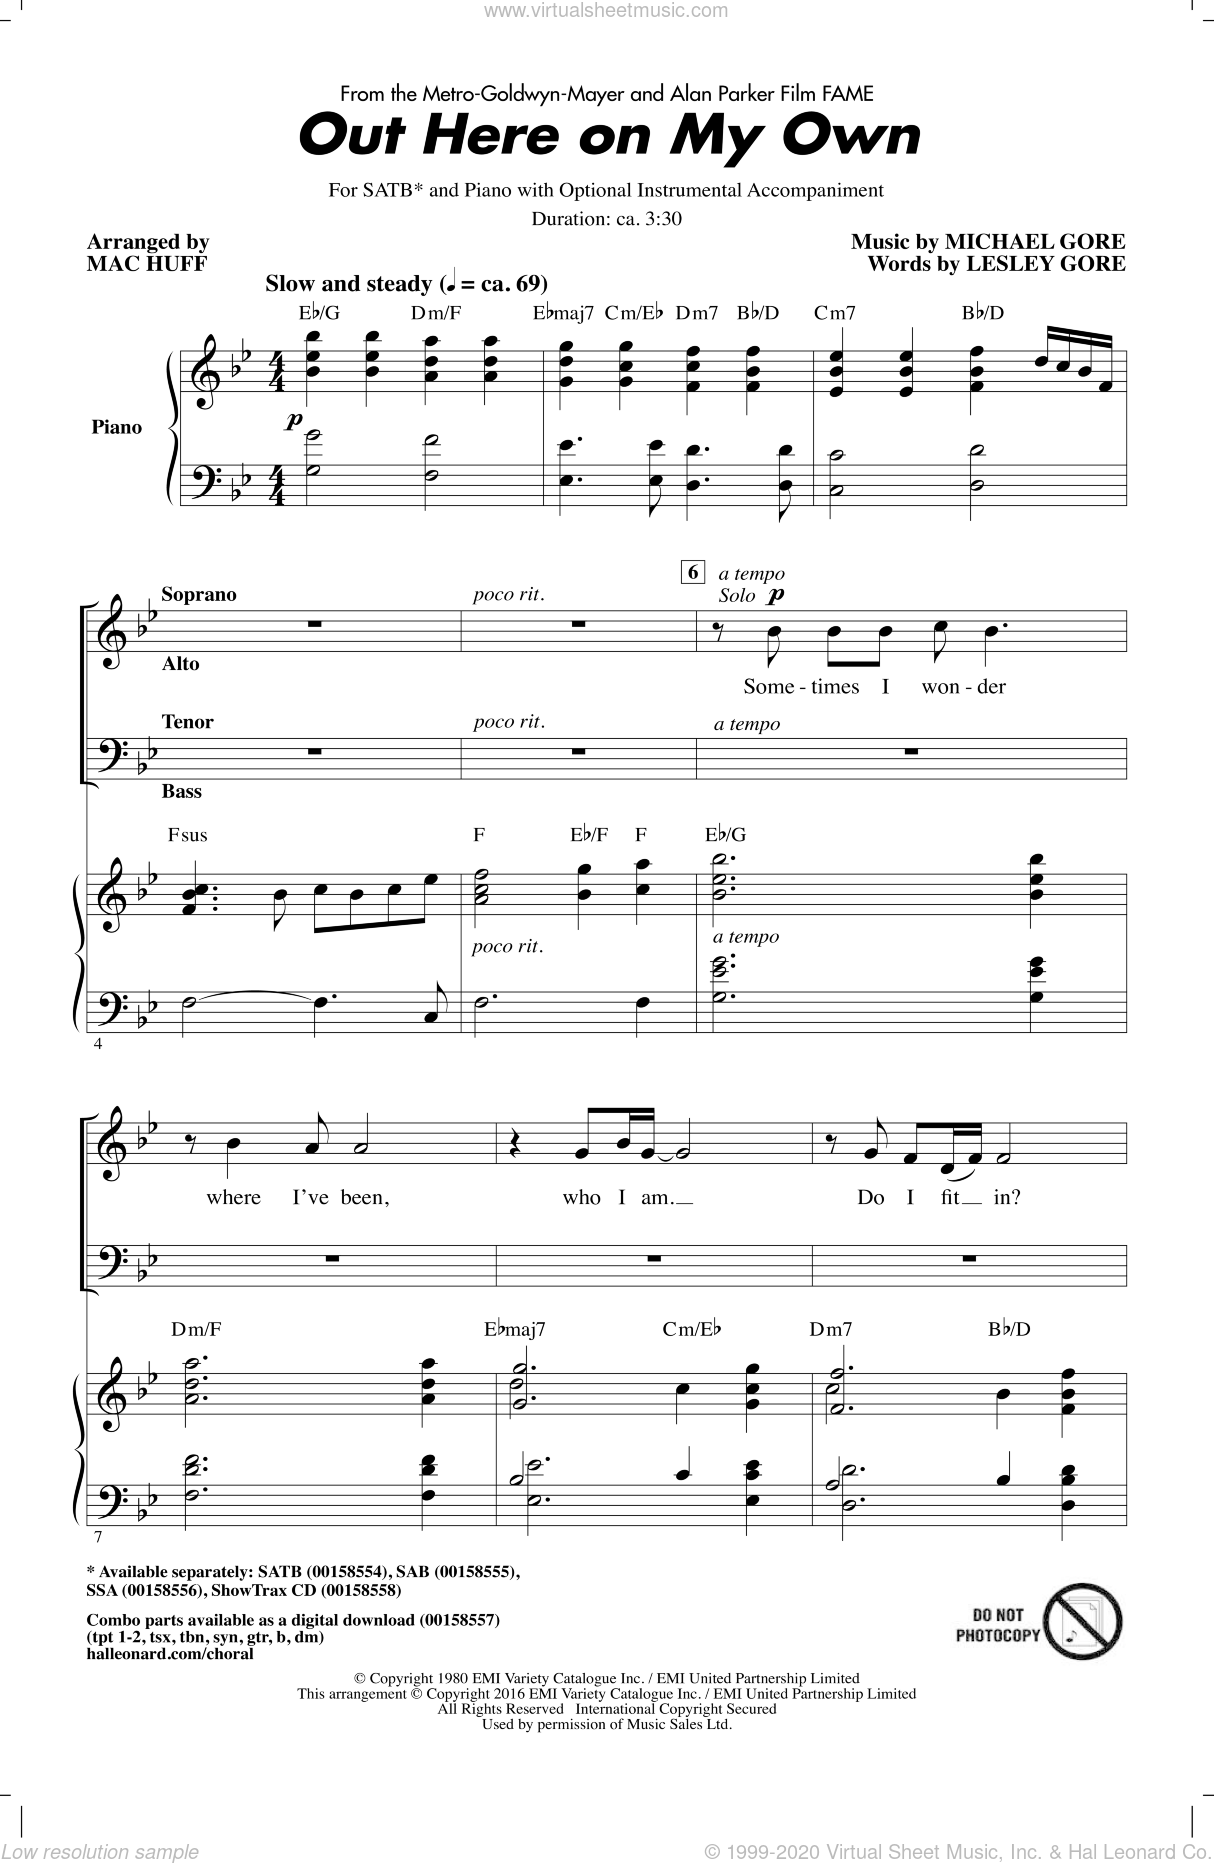 Out Here On My Own sheet music for choir (SATB: soprano, alto, tenor, bass) by Michael Gore, Mac Huff and Lesley Gore, intermediate